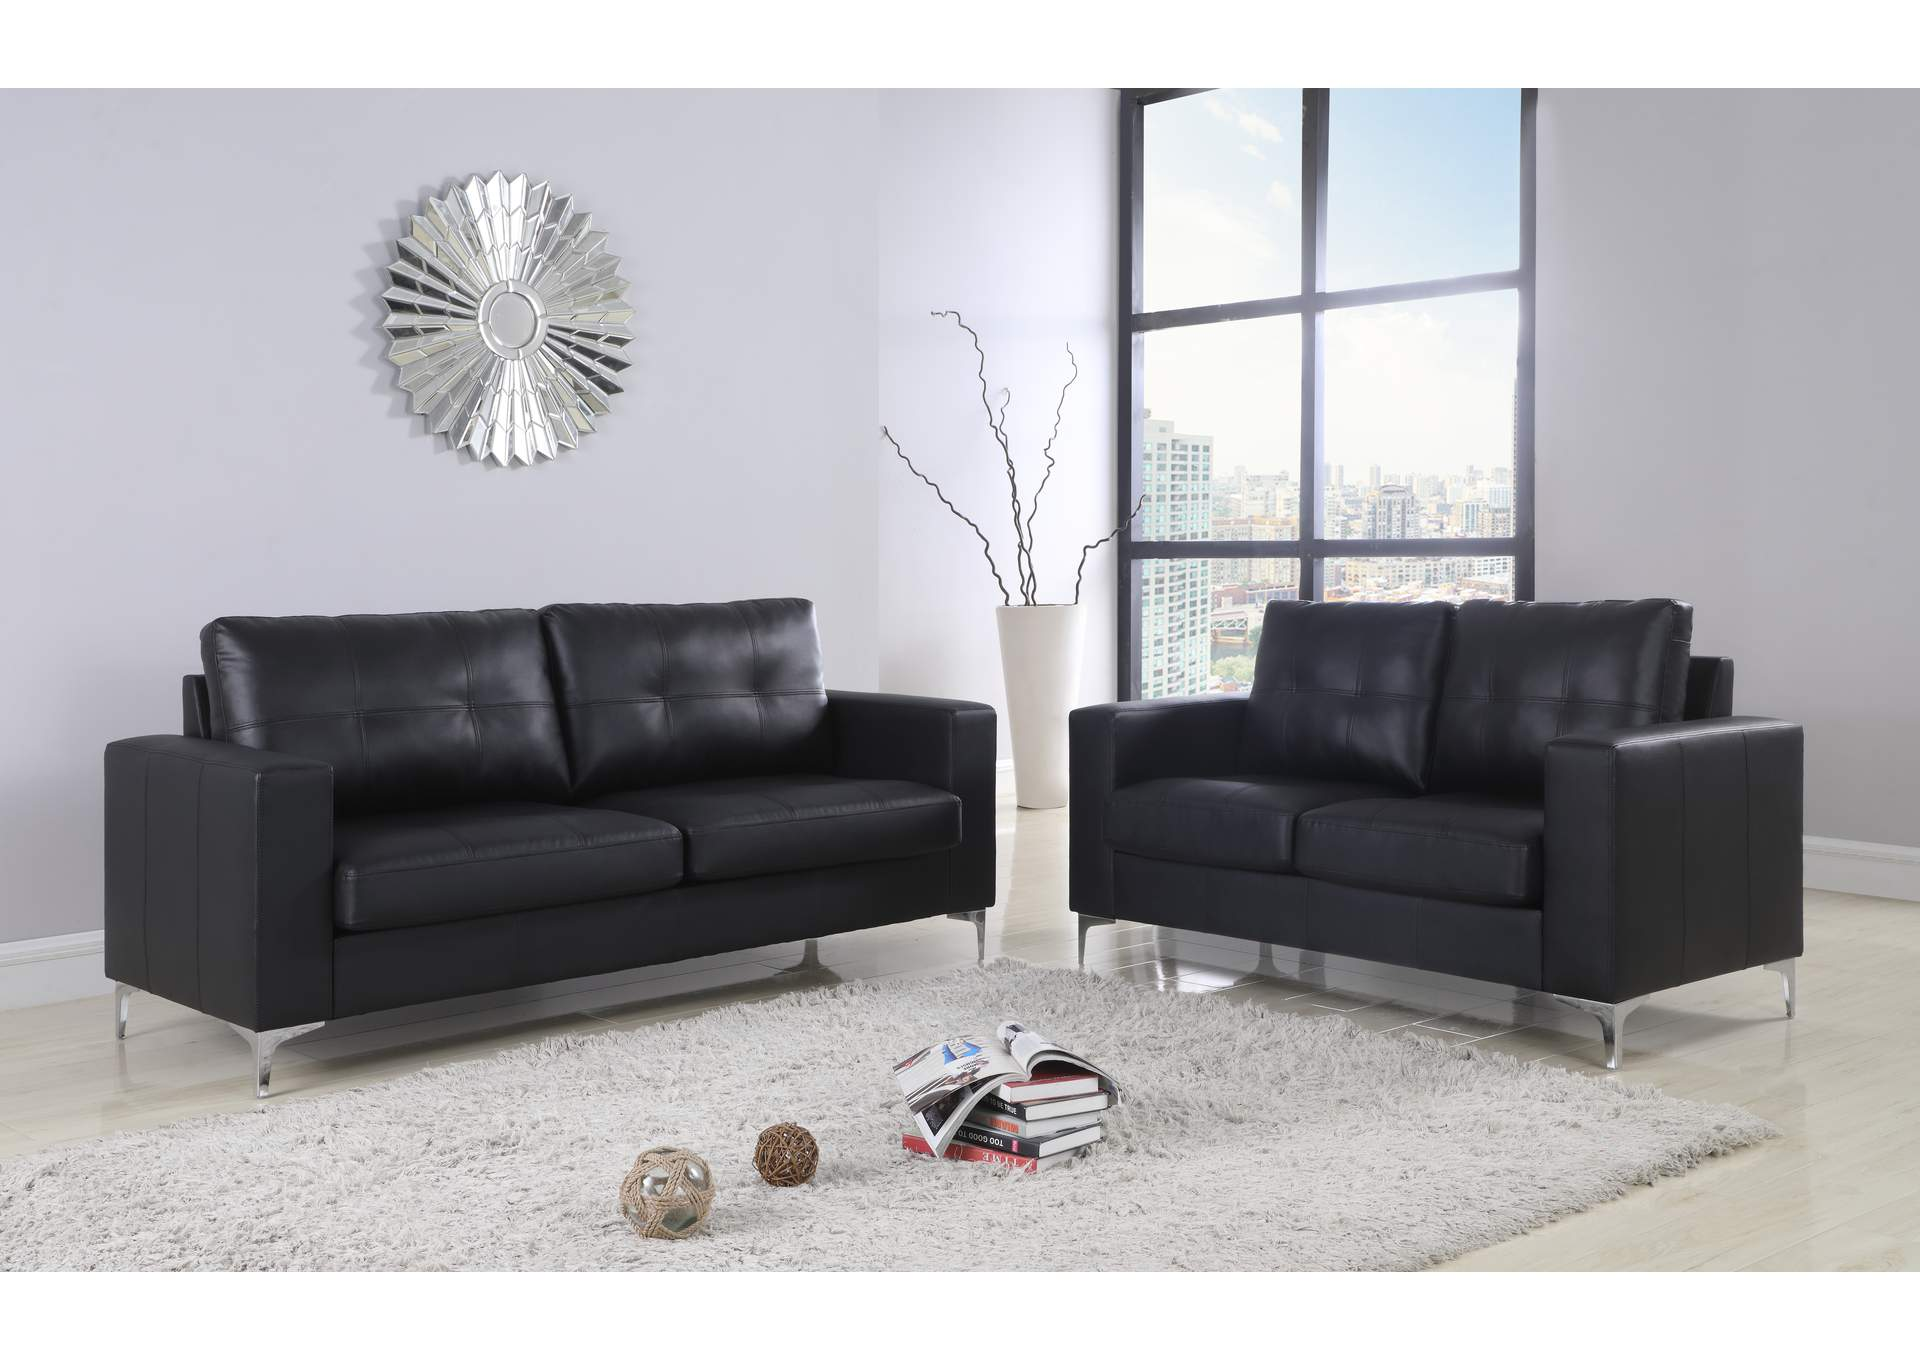 Black Contemporary Leather Loveseat With Chrome Leg,Global Trading